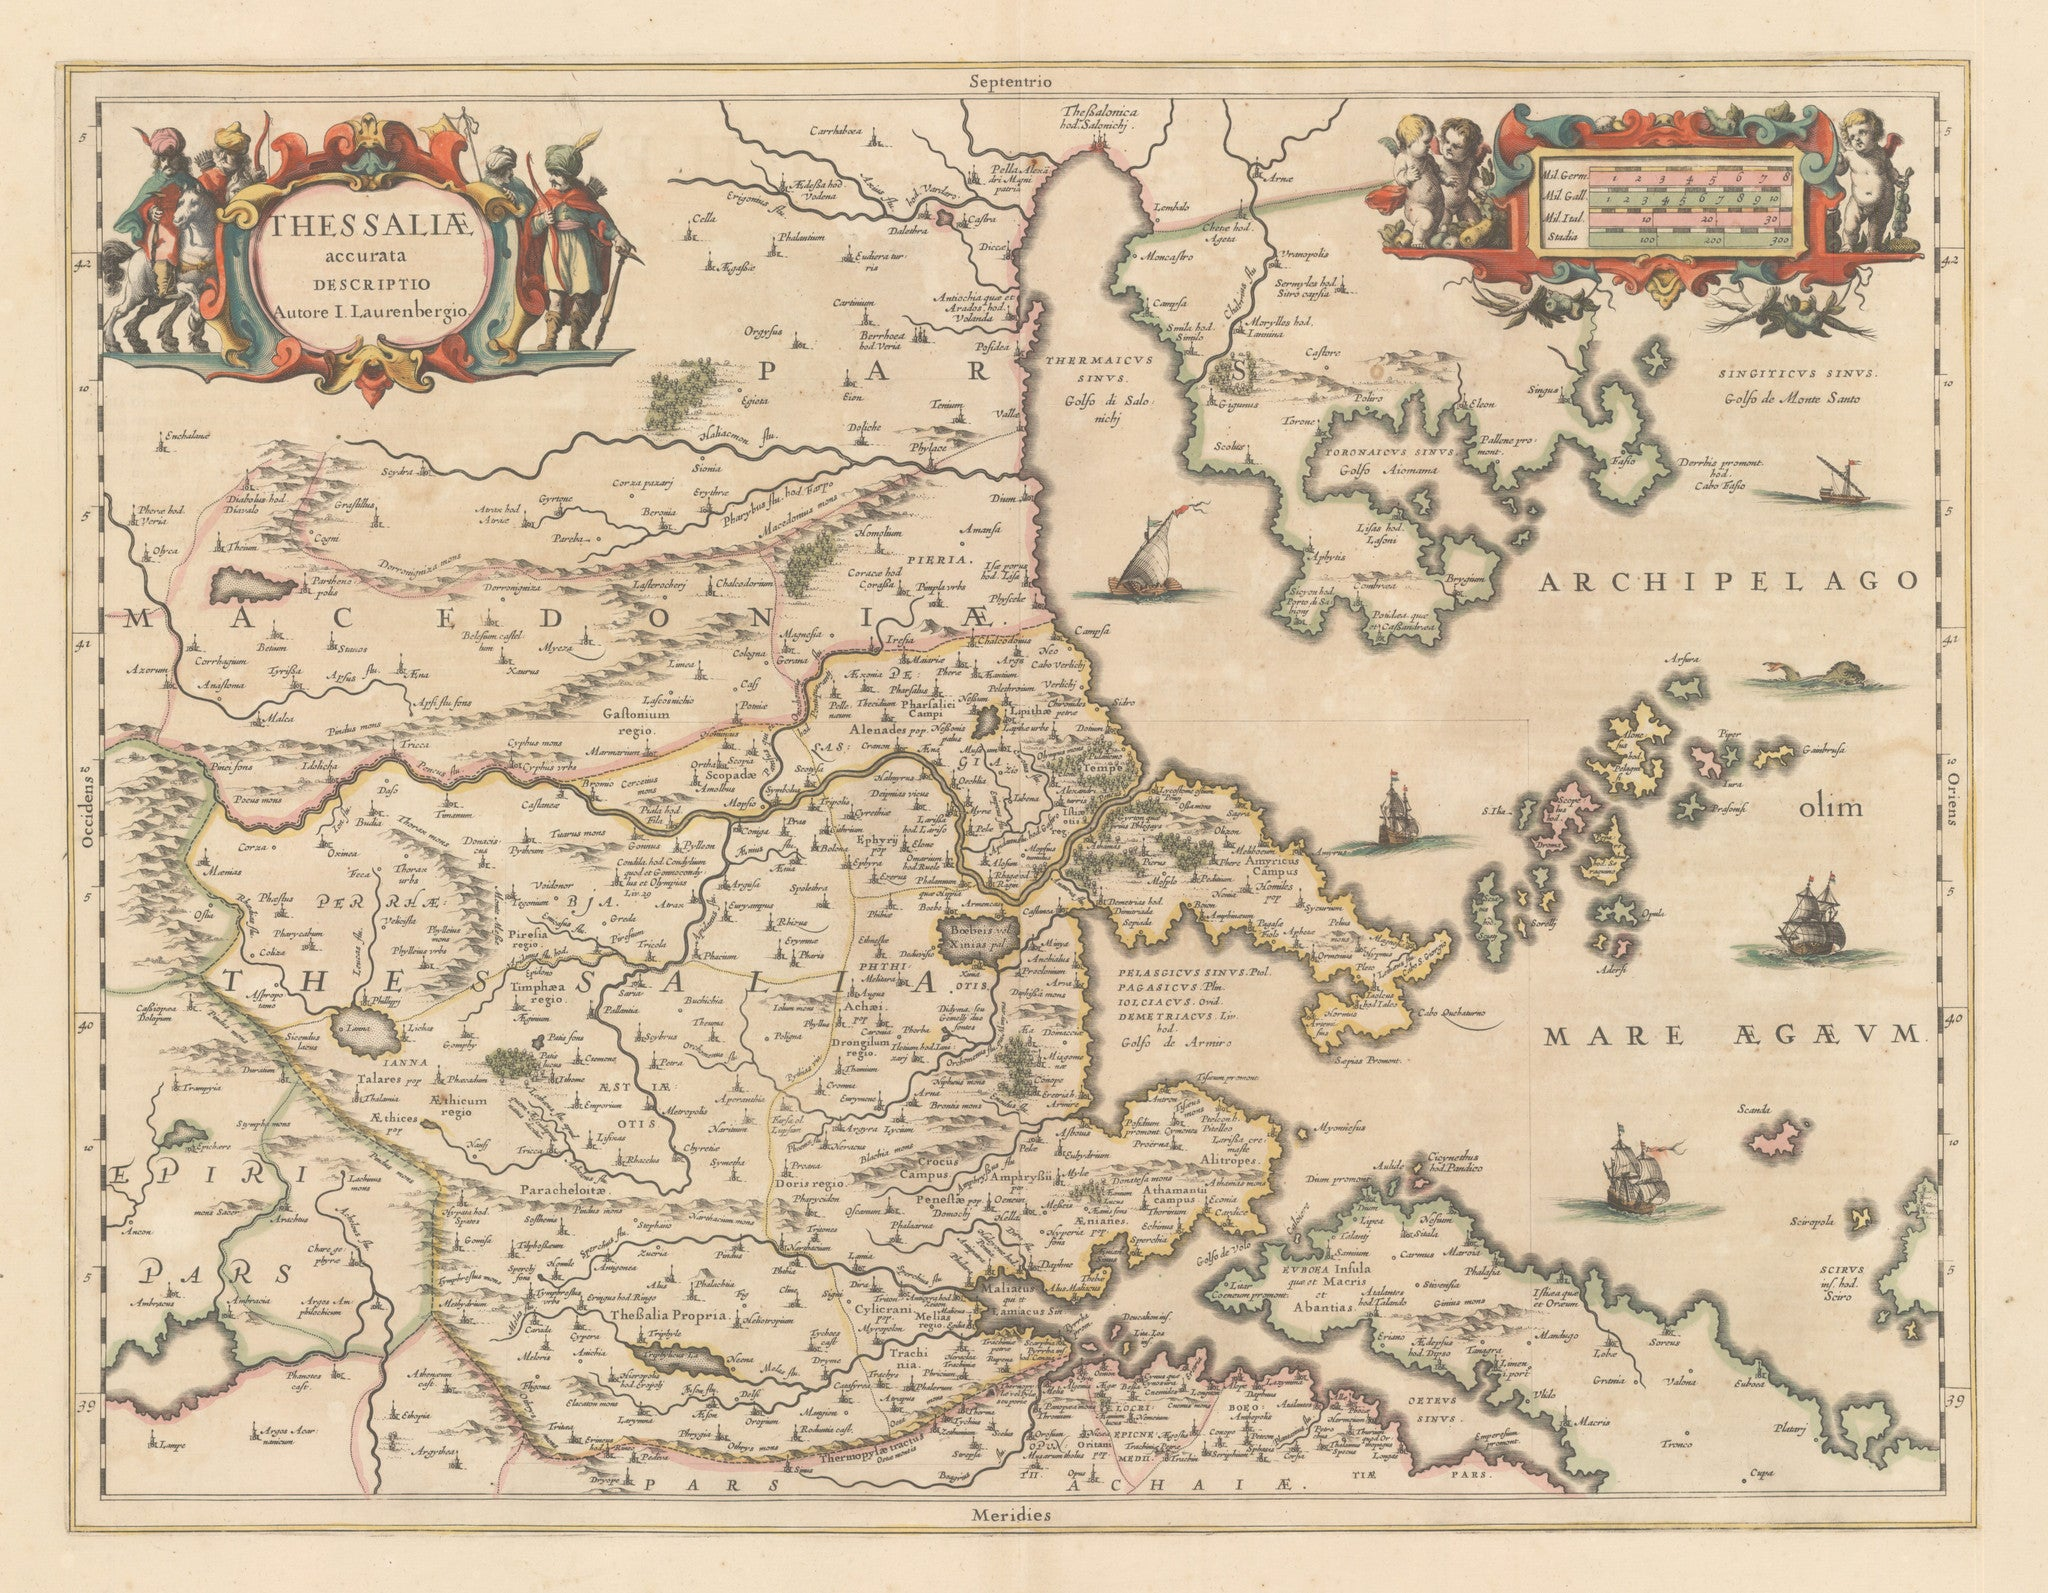 nwcartographic.com: Antique Map of Greece -Thessaliae accurata Descriptio Autore I. Laurenbergio. By: Jansson 1650